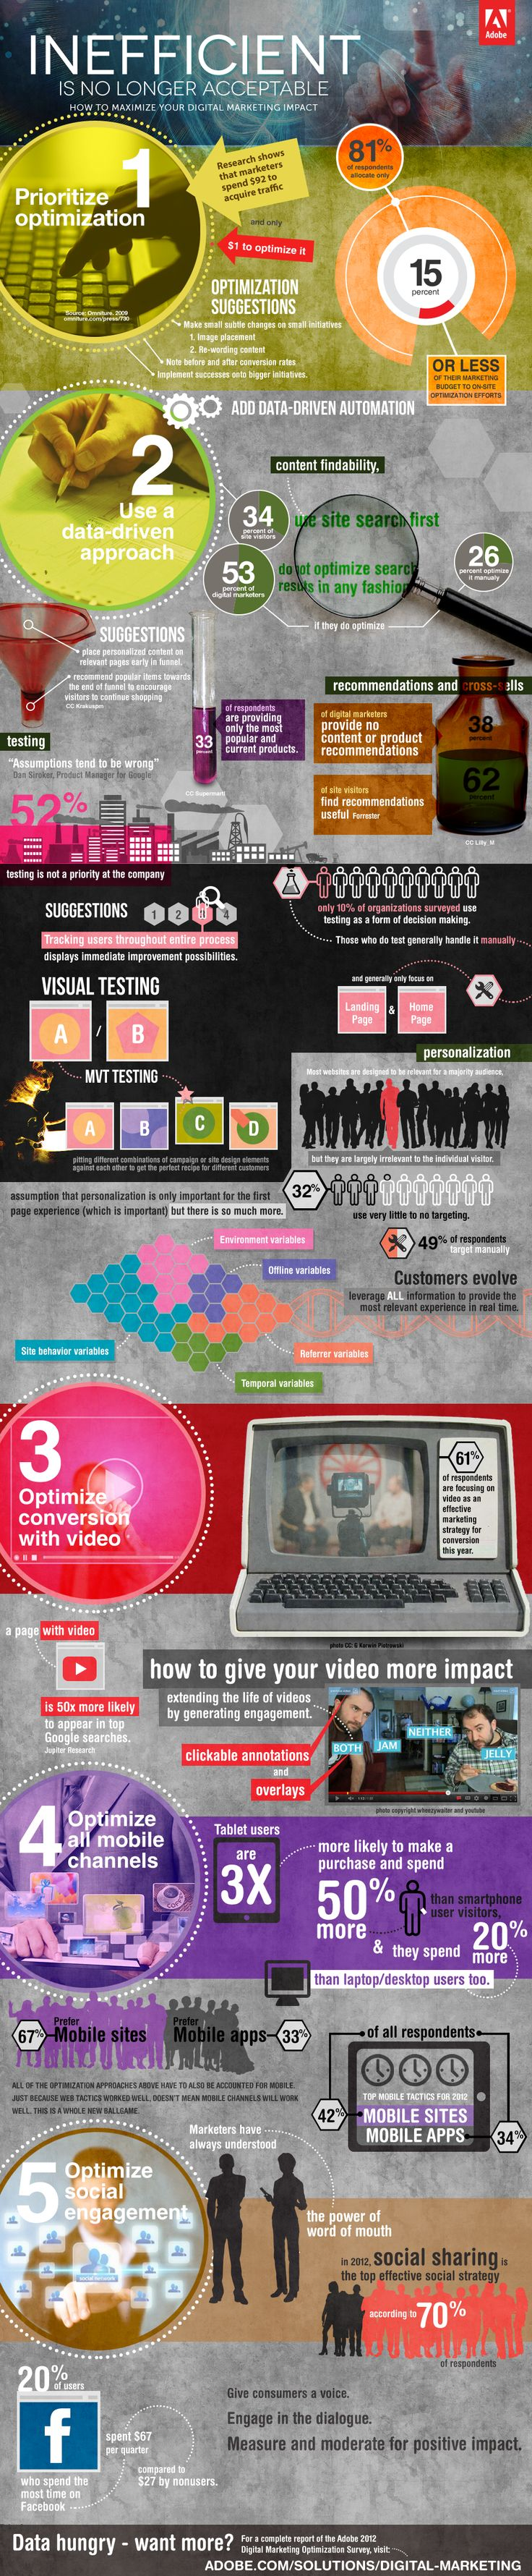 Top 5 Conversion Opportunities for Digital Marketers in 2012   Adobe